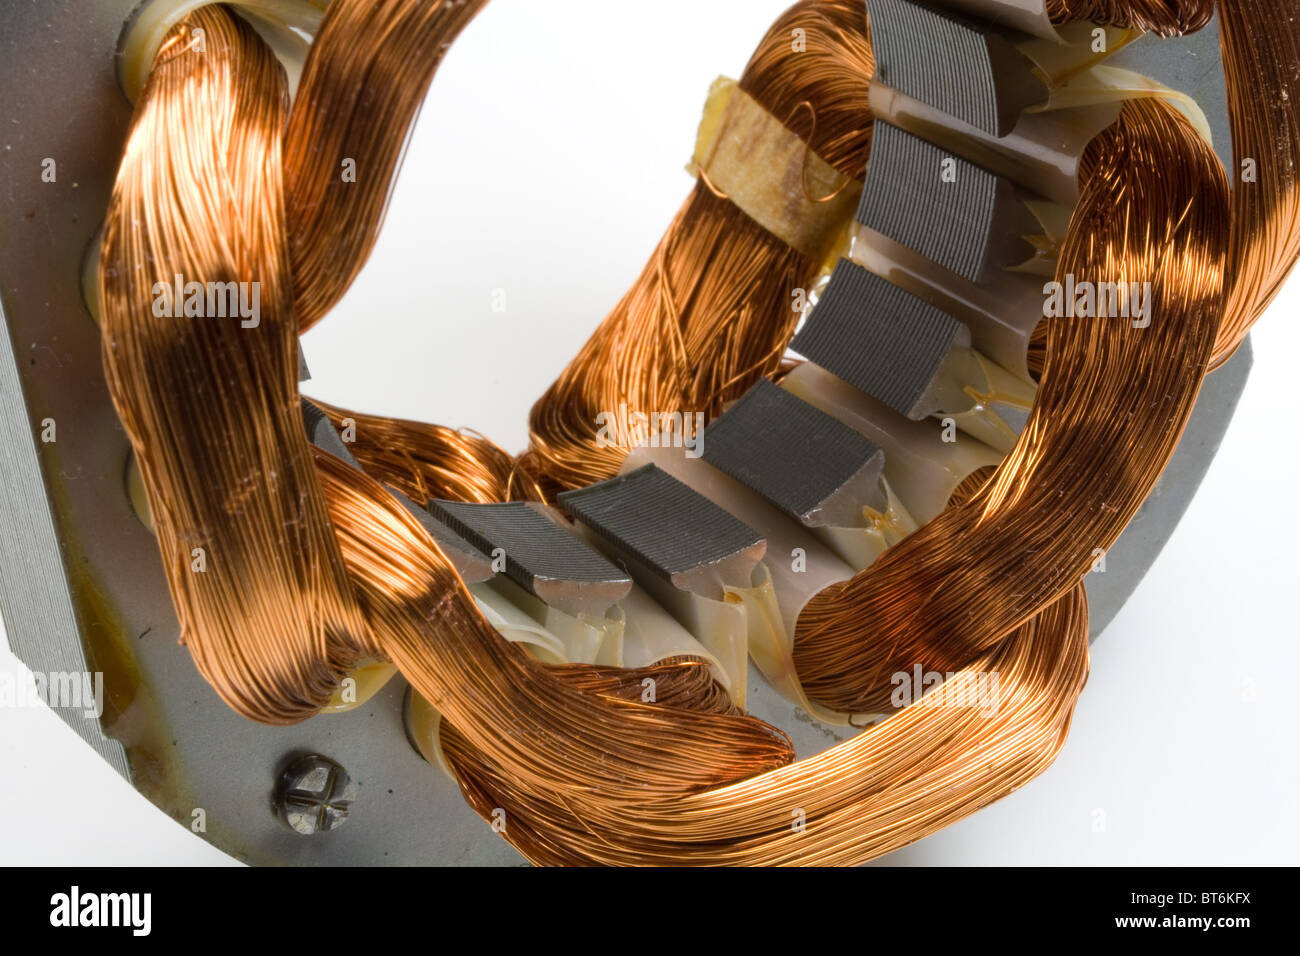 Copper Wire Coils in Electric Motor Stock Photo: 32109166 - Alamy